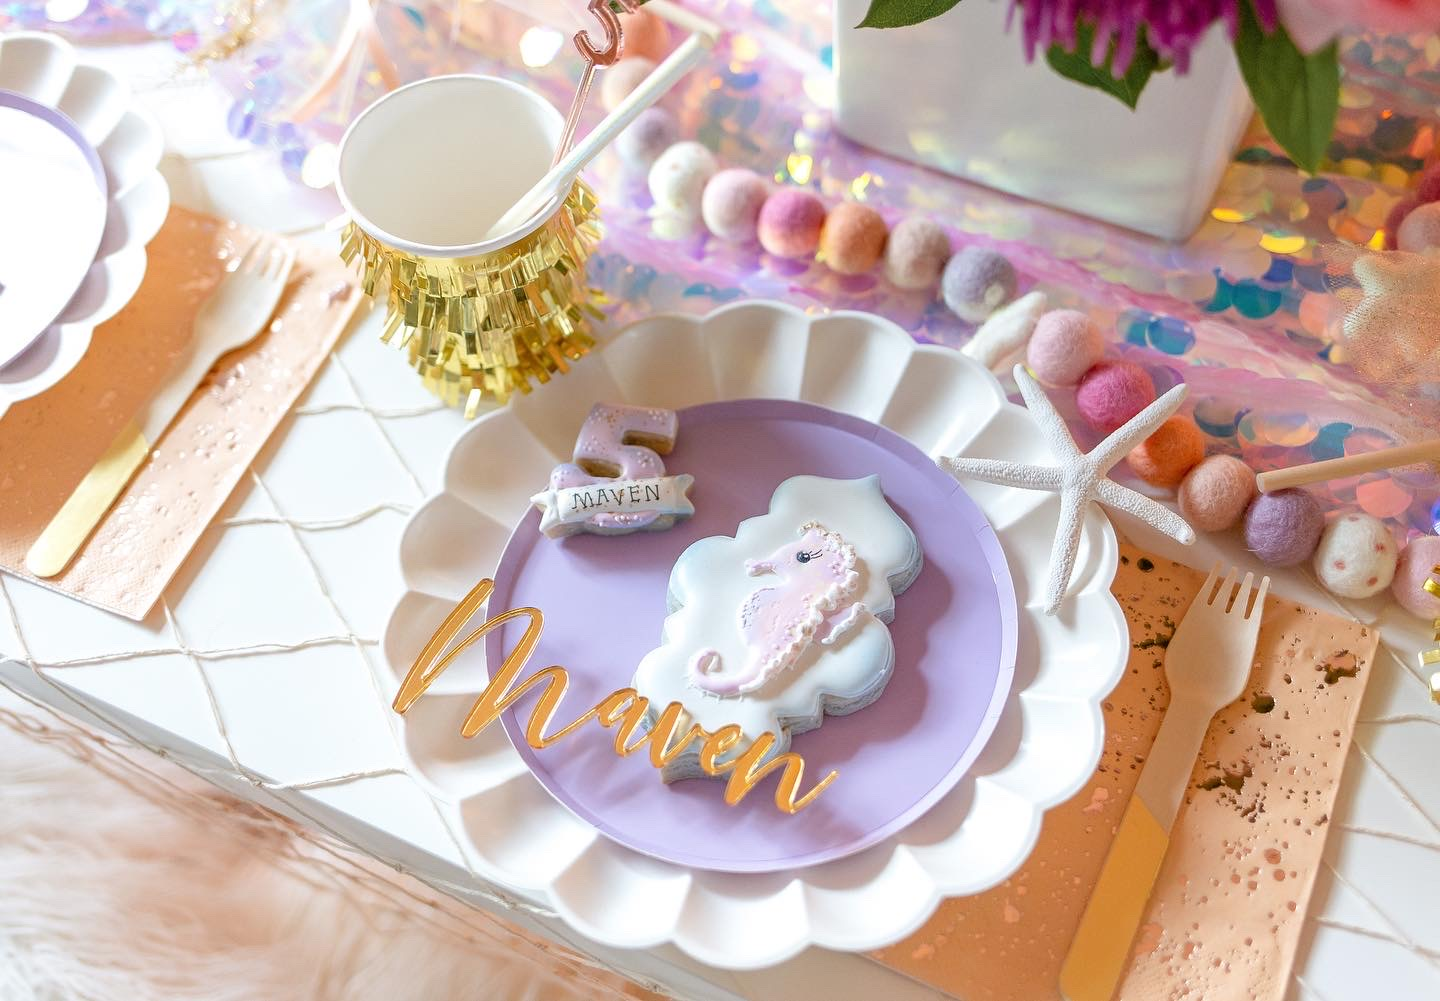 Seahorse cookie on purple plate for little girls 5th birthday